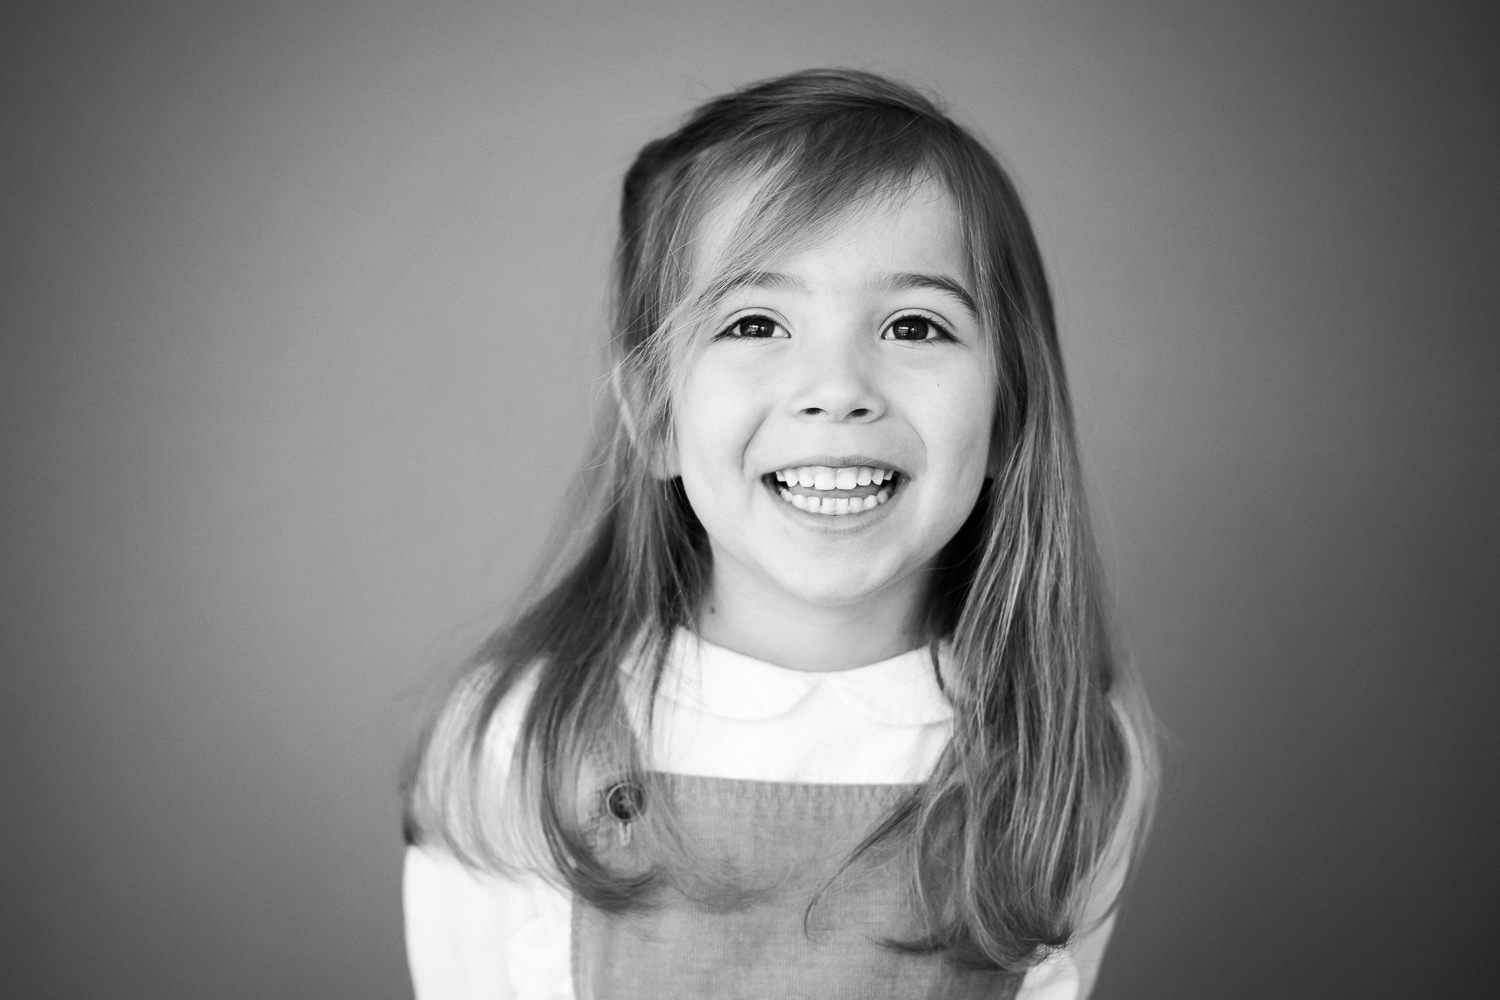 Nursery_Children_Portraits_London_Carla_Monge_Photography_1500px-17.jpg